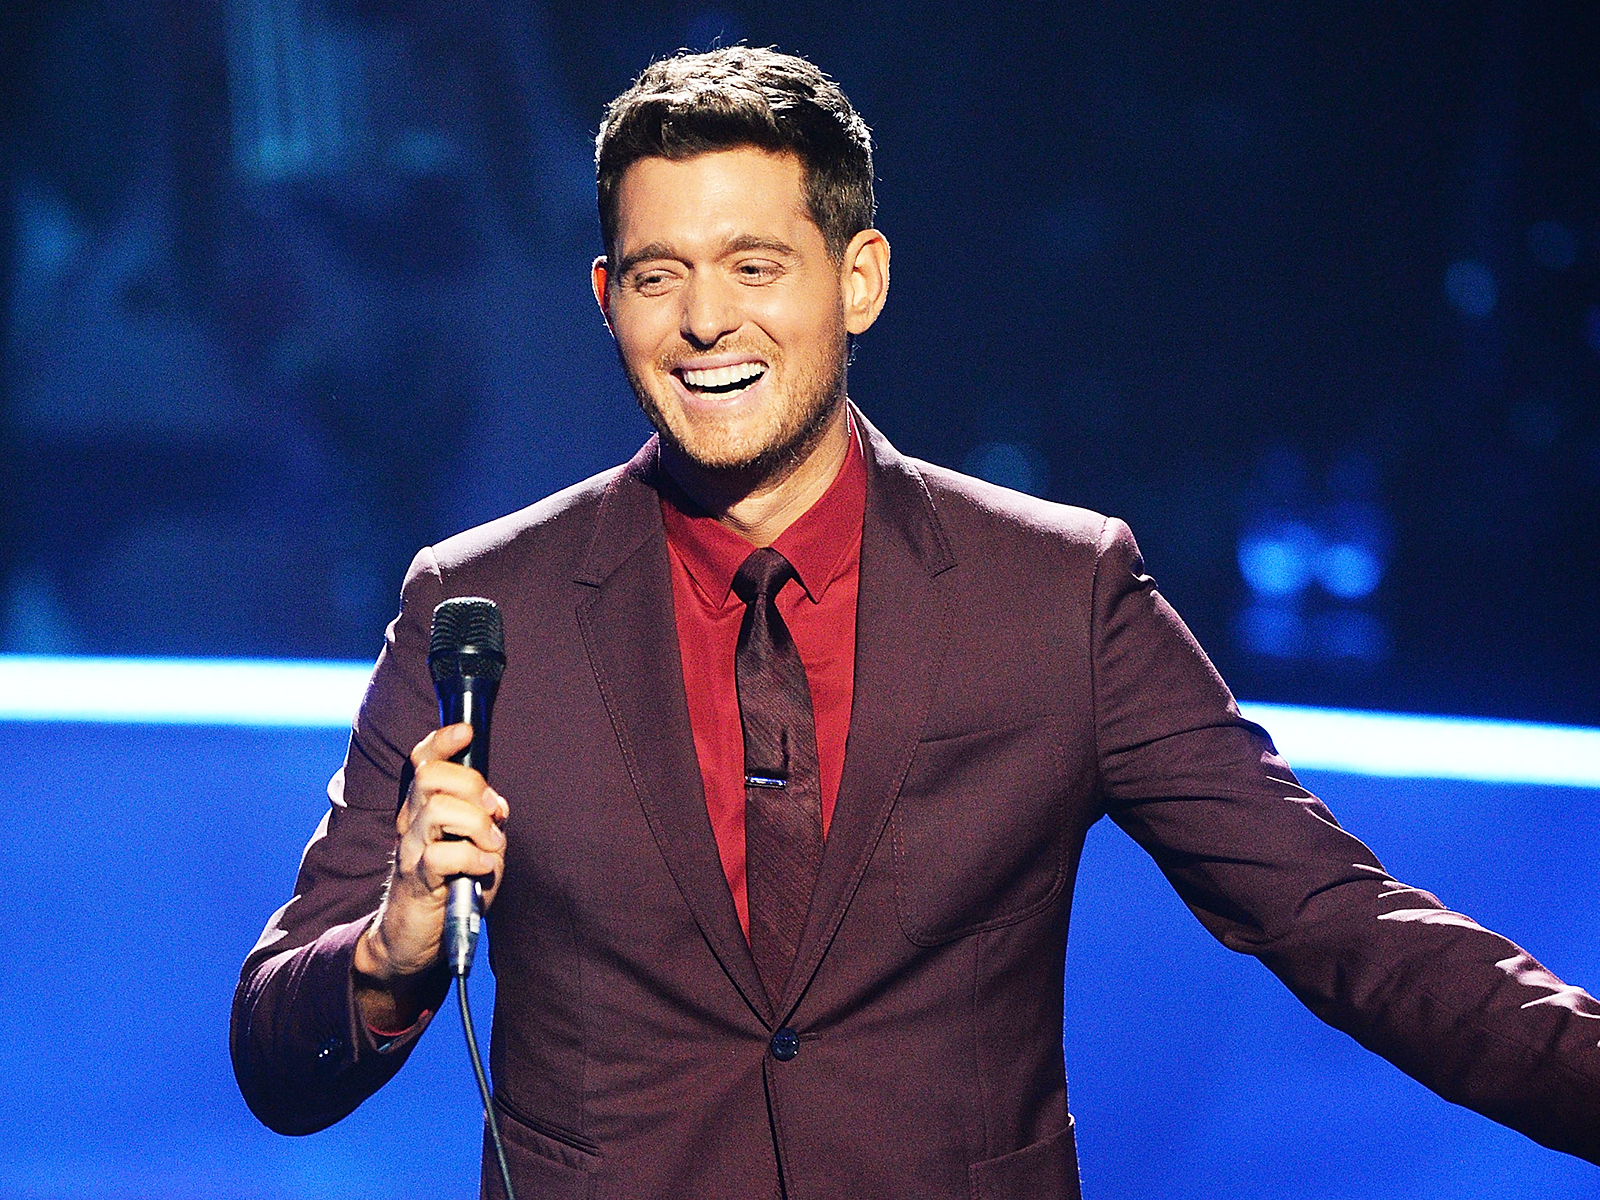 michael buble music video